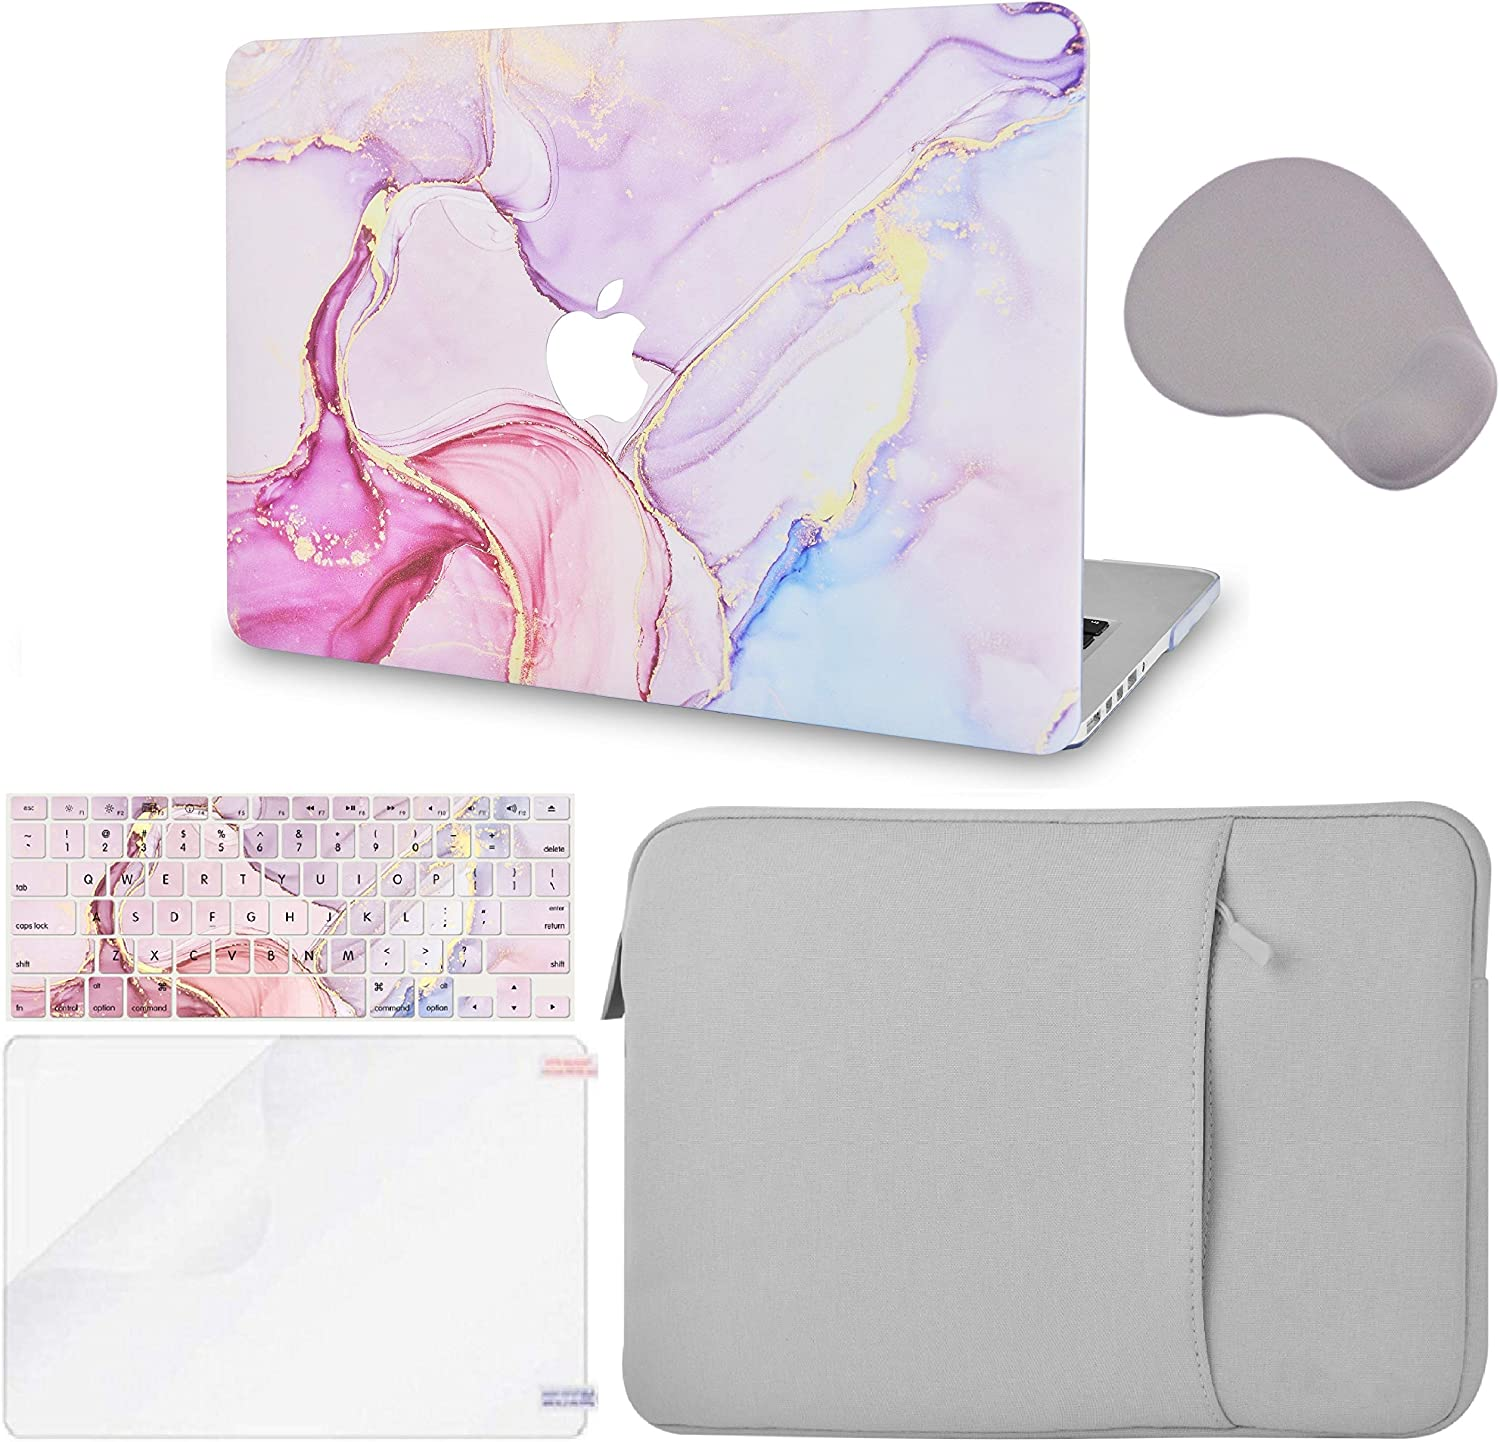 LuvCase 5 in 1 Laptop Case Compatible withMacBook Pro 12